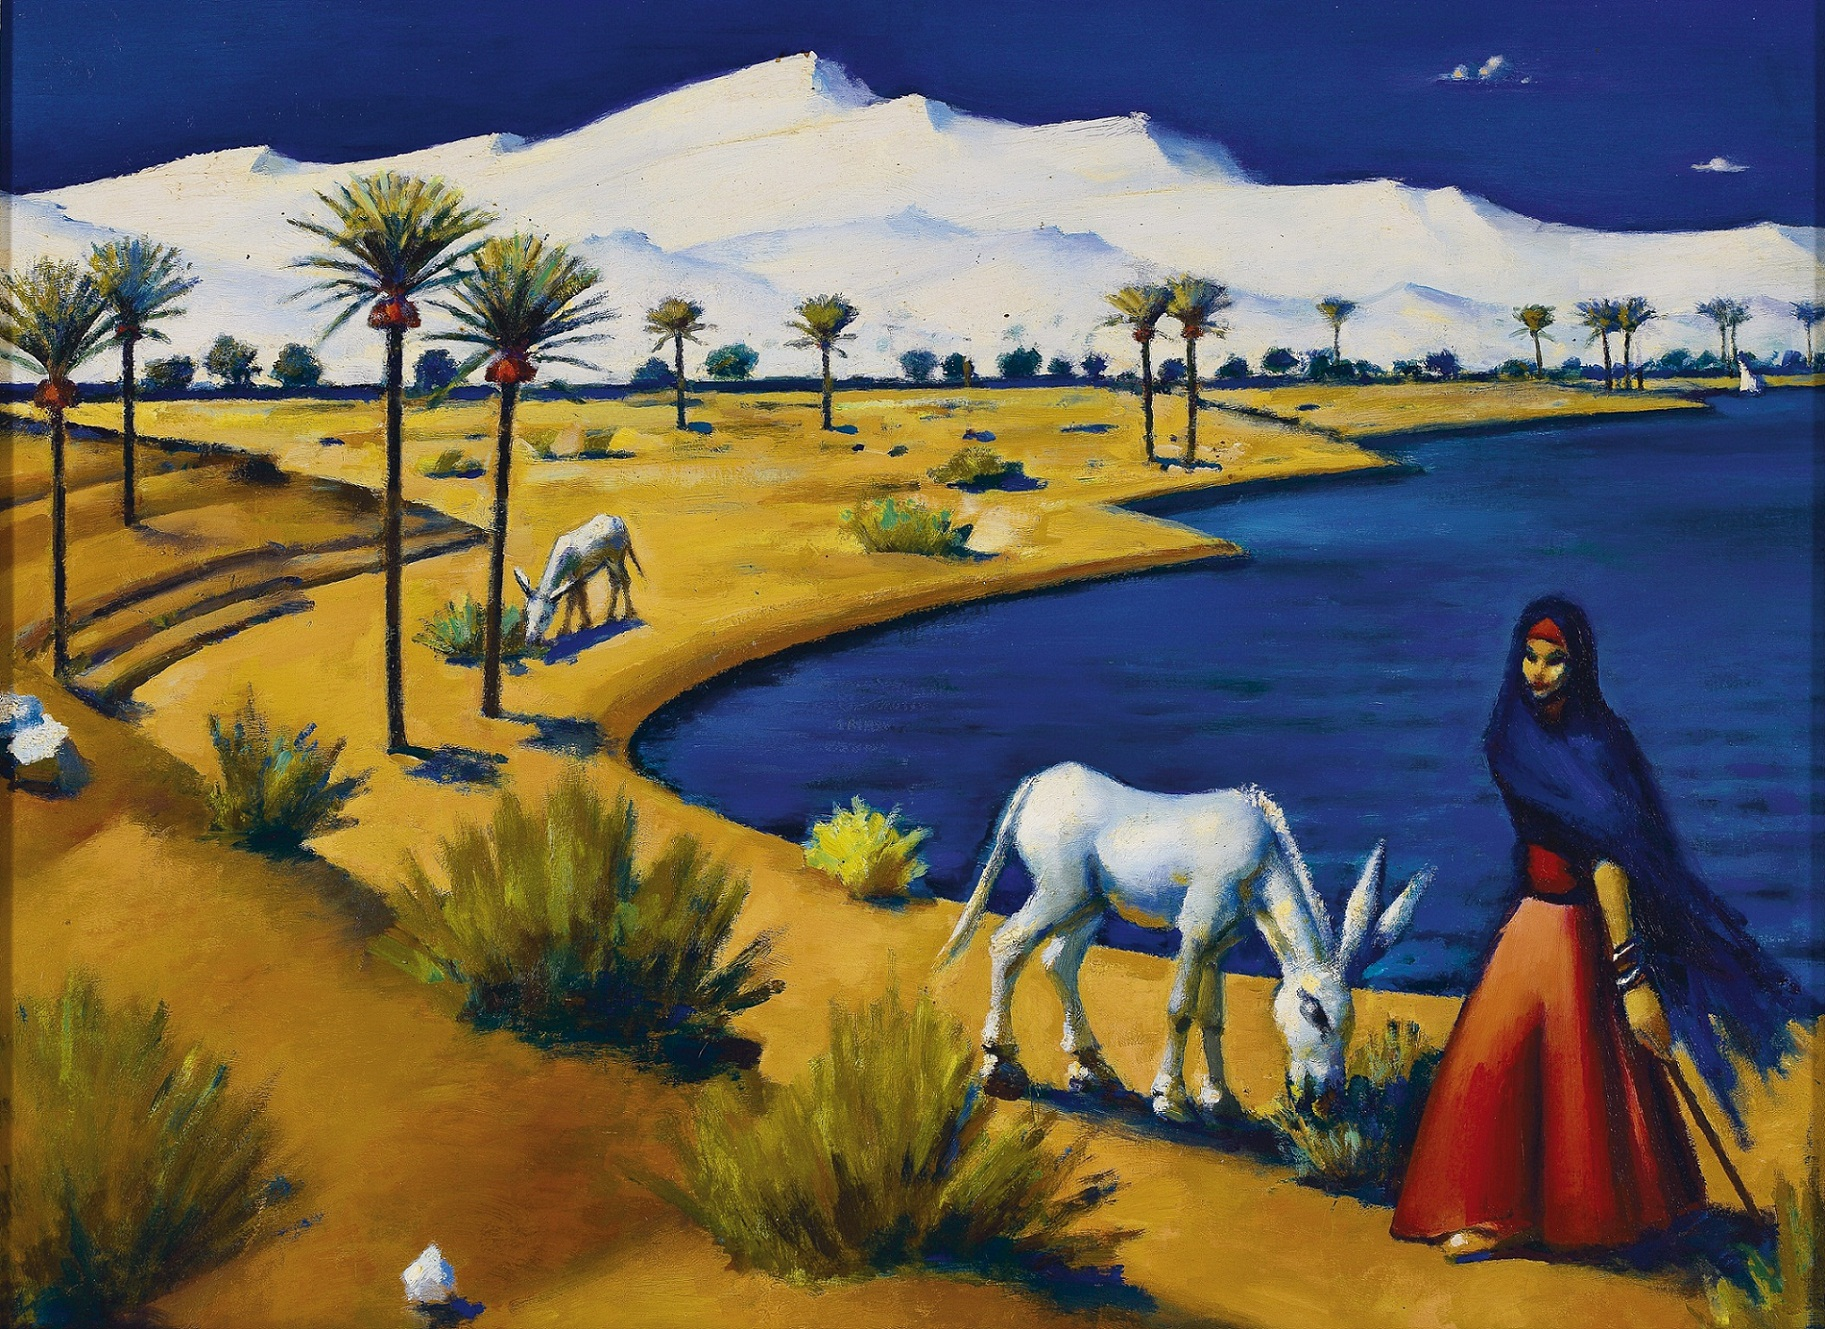 ARAB, IRANIAN AND TURKISH ART AT CHRISTIE'S IN DUBAI